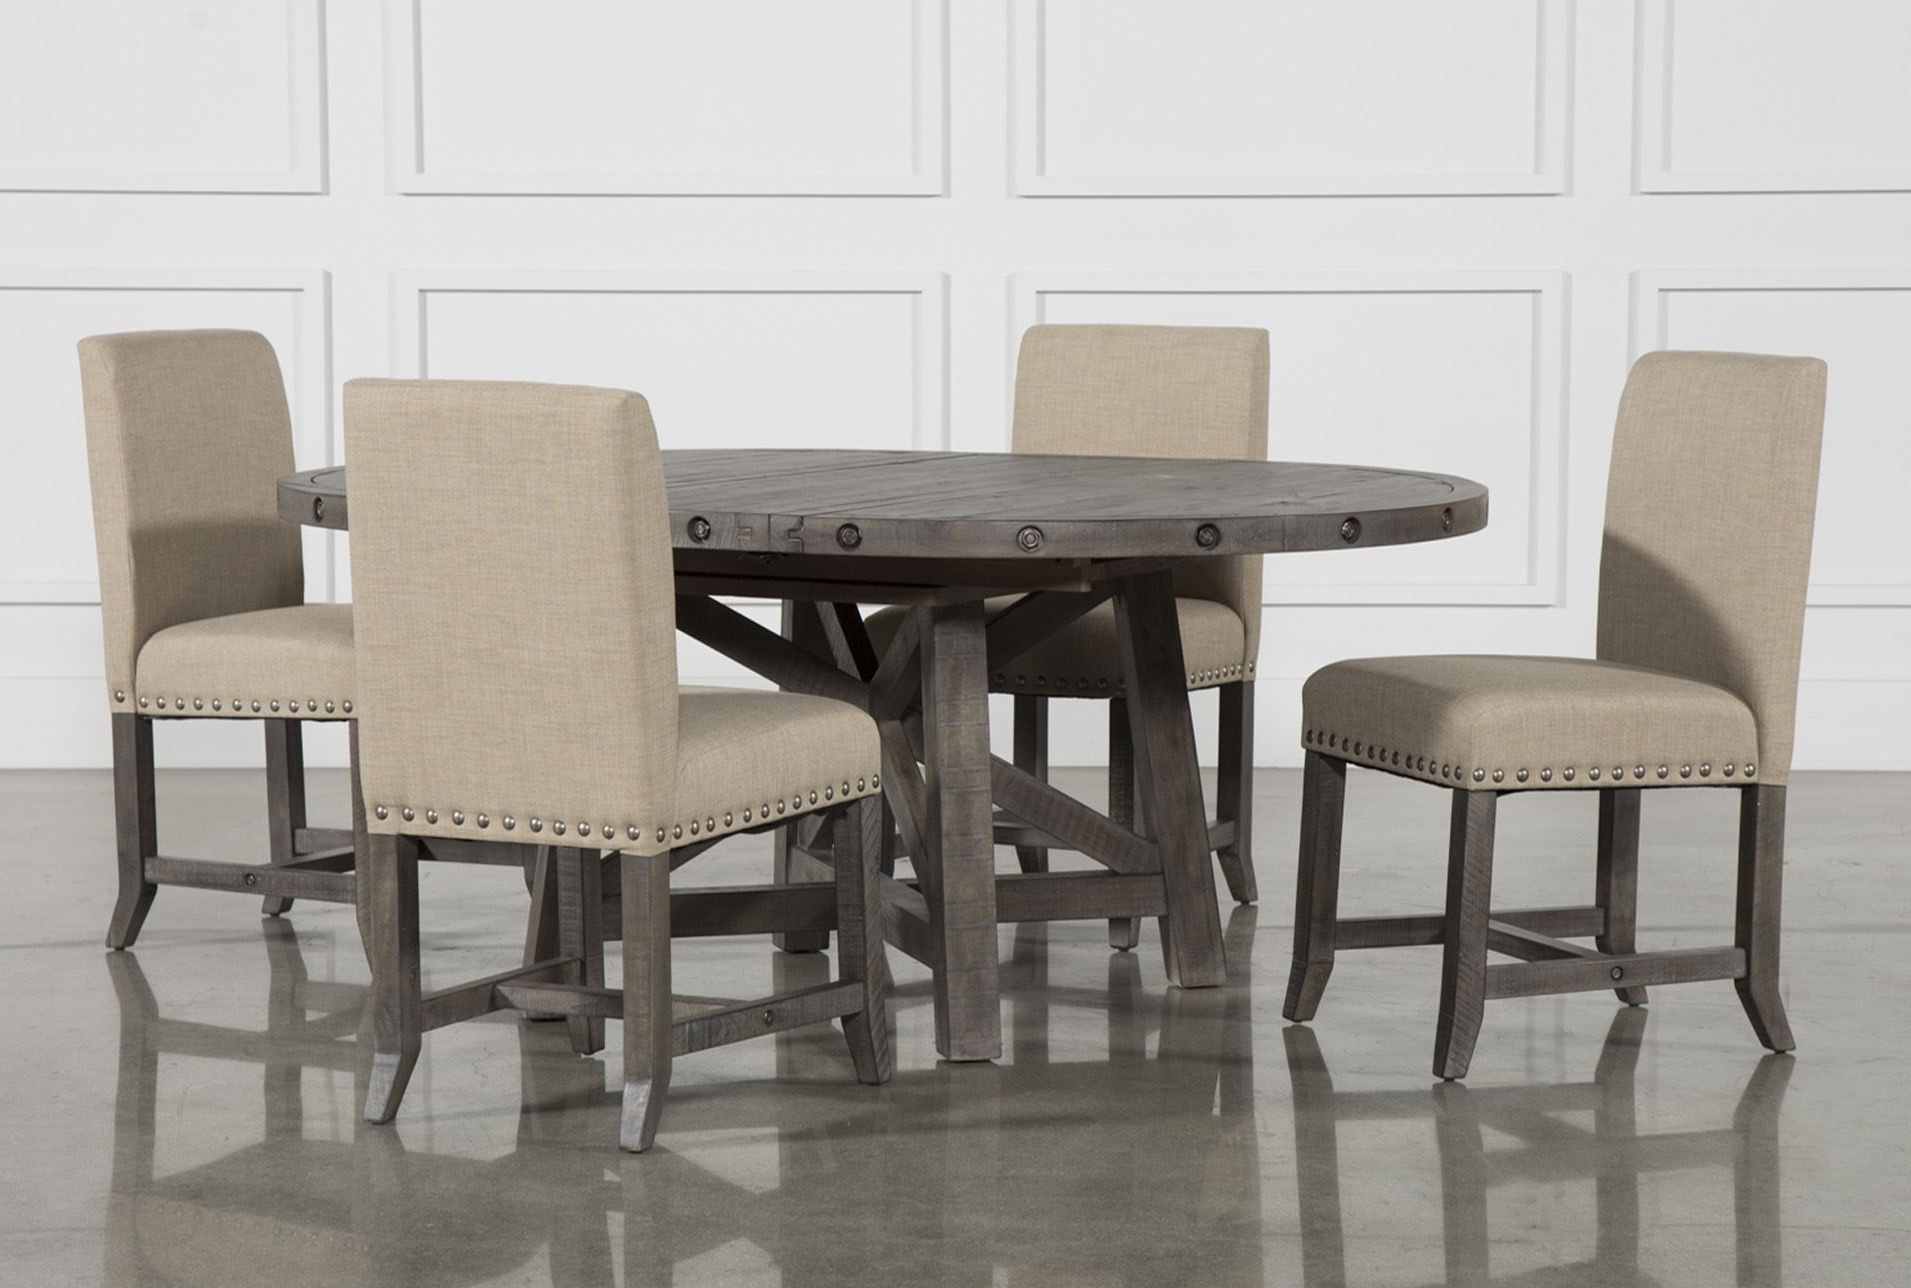 Crawford 6 Piece Rectangle Dining Sets Within Most Recent Jaxon Grey 5 Piece Round Extension Dining Set W/upholstered Chairs (View 8 of 25)